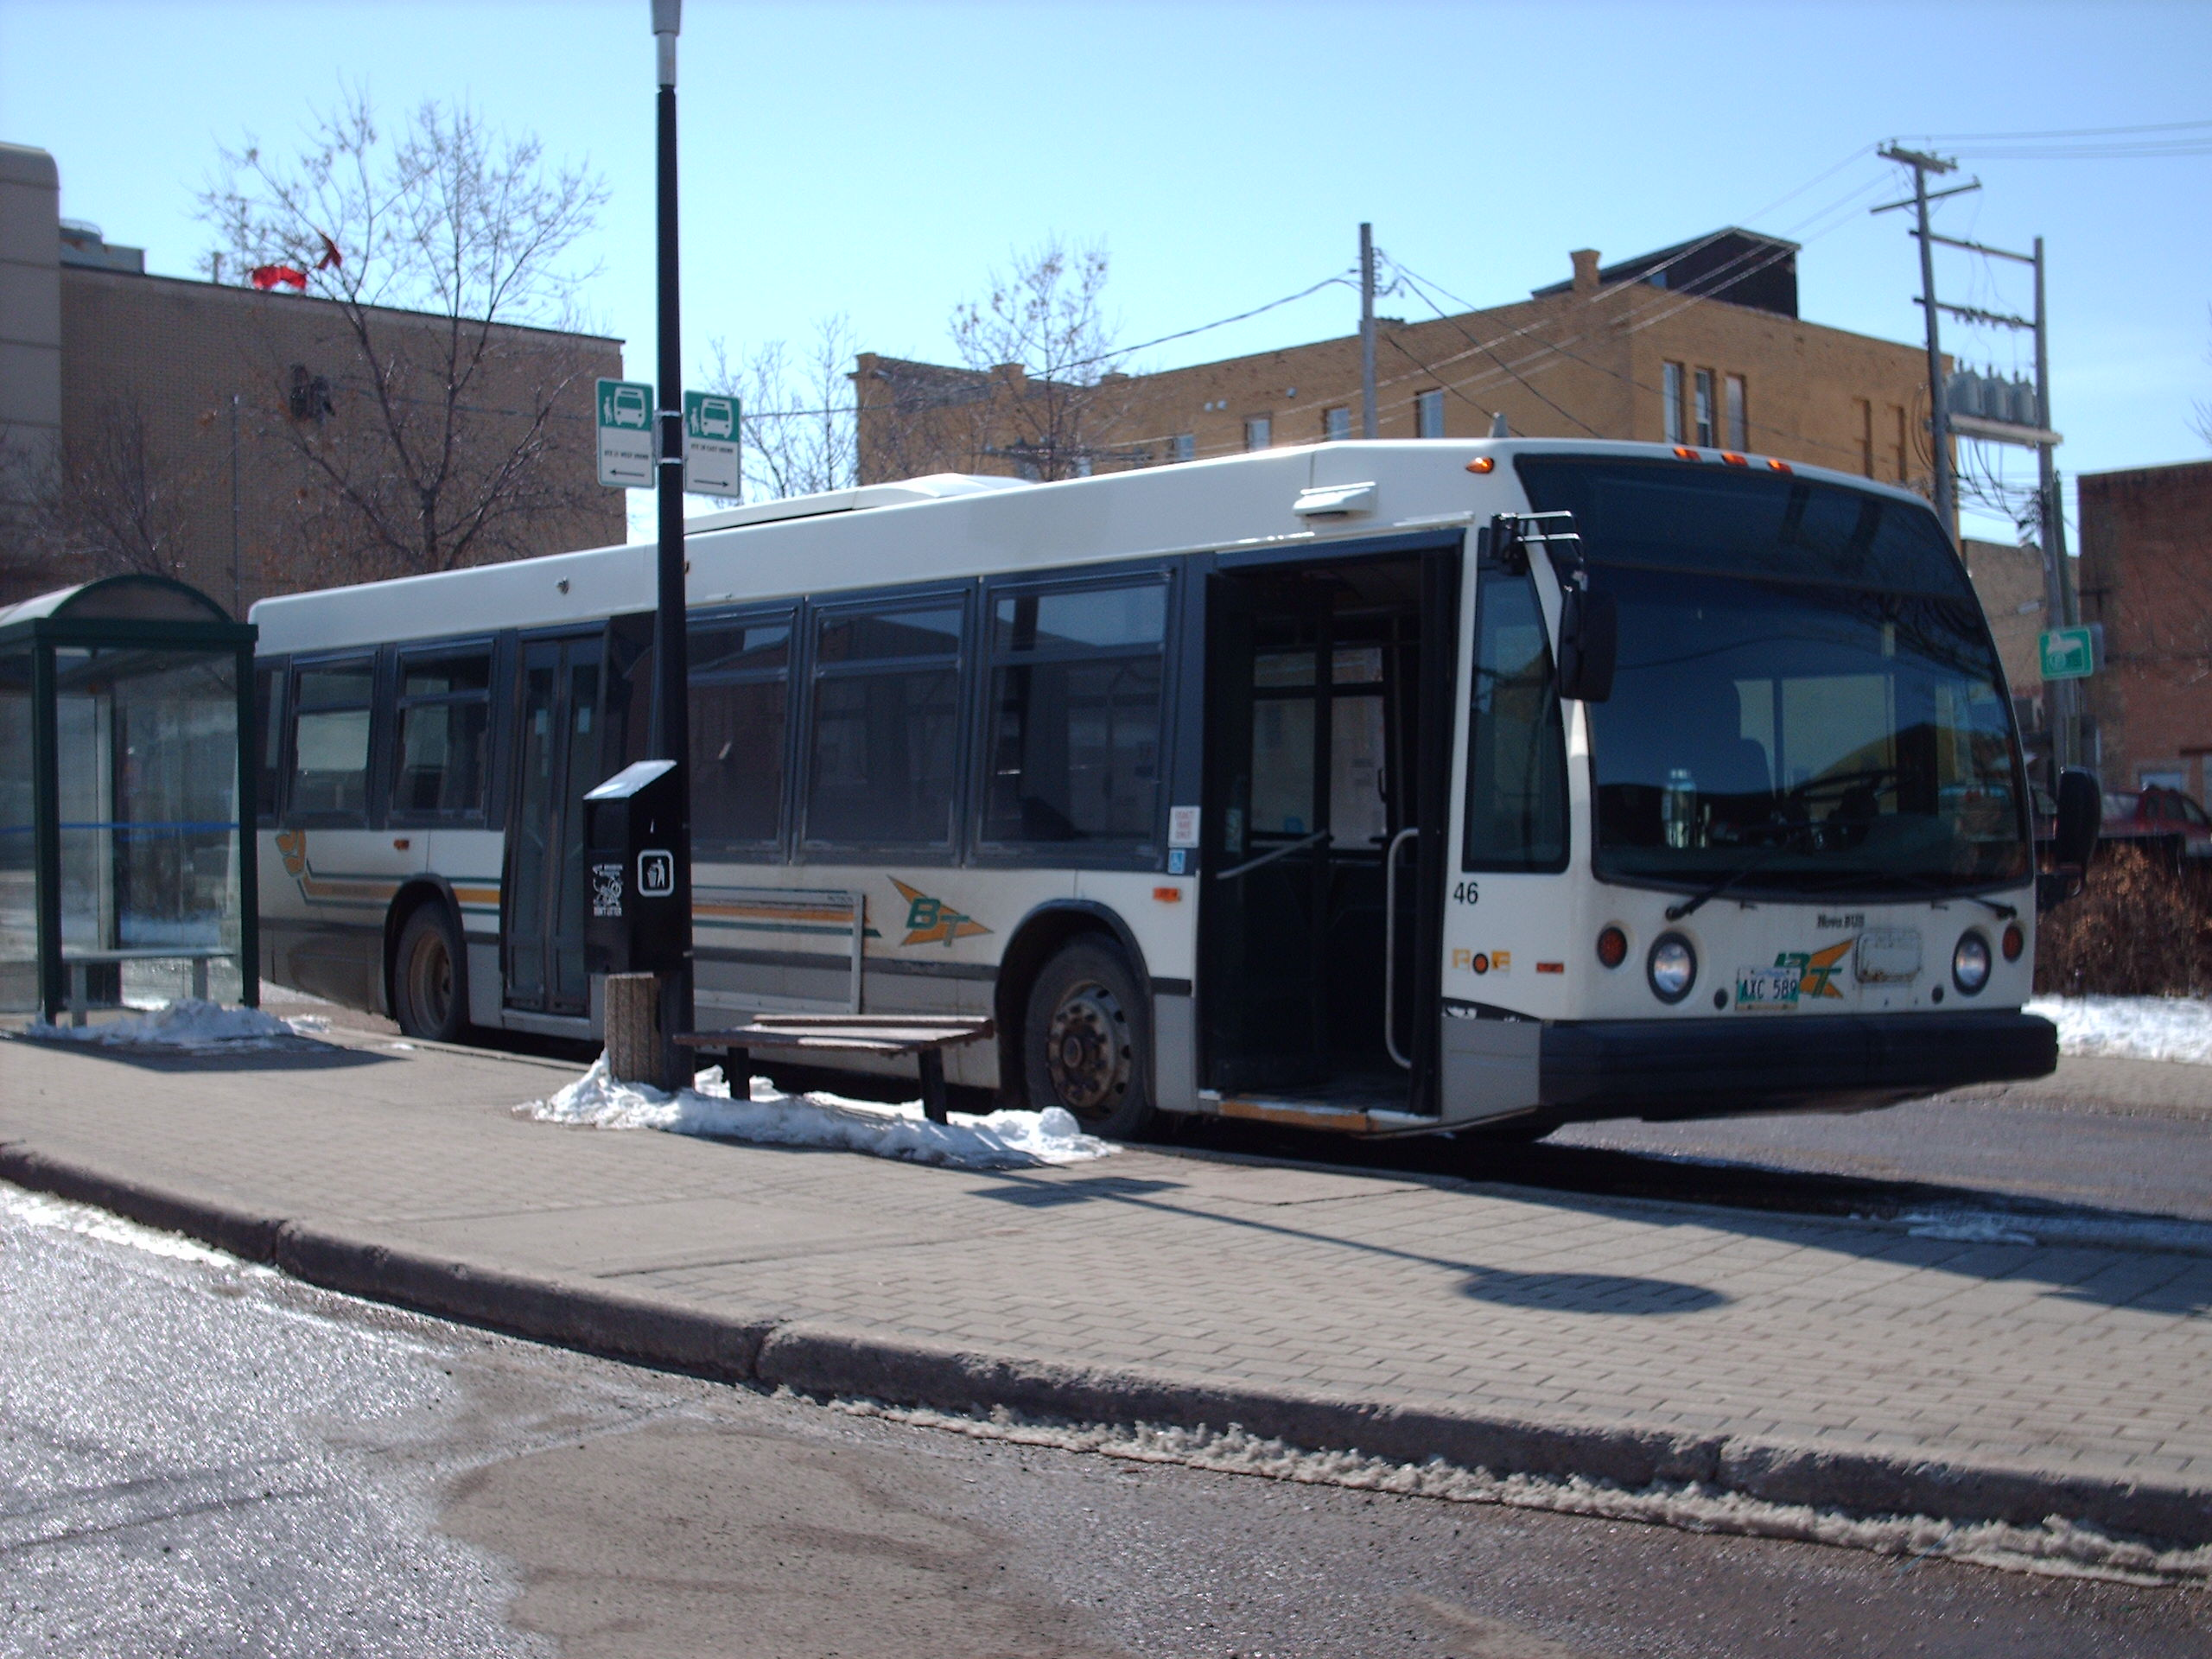 Pictures.Buses_045.JPG